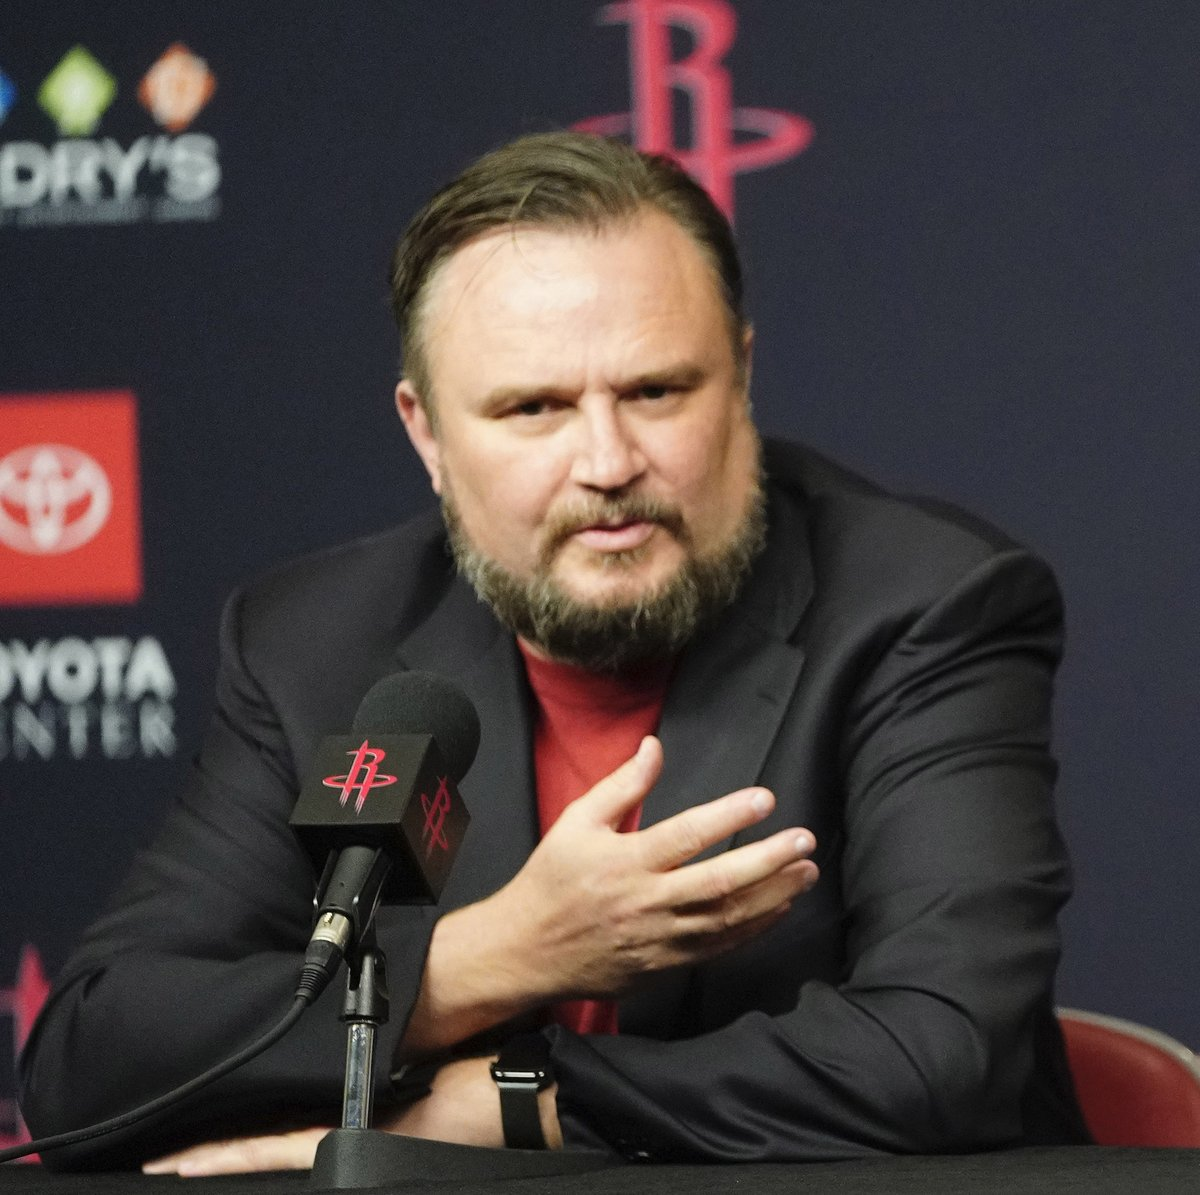 #NBA story: Daryl Morey traded for James Harden, Chris Paul and Russell Westbrook with the #Rockets. Who would he go after for the #Sixers – and who would he be willing to deal? https://t.co/Mkh0120kfj https://t.co/o9uFh6hc8W